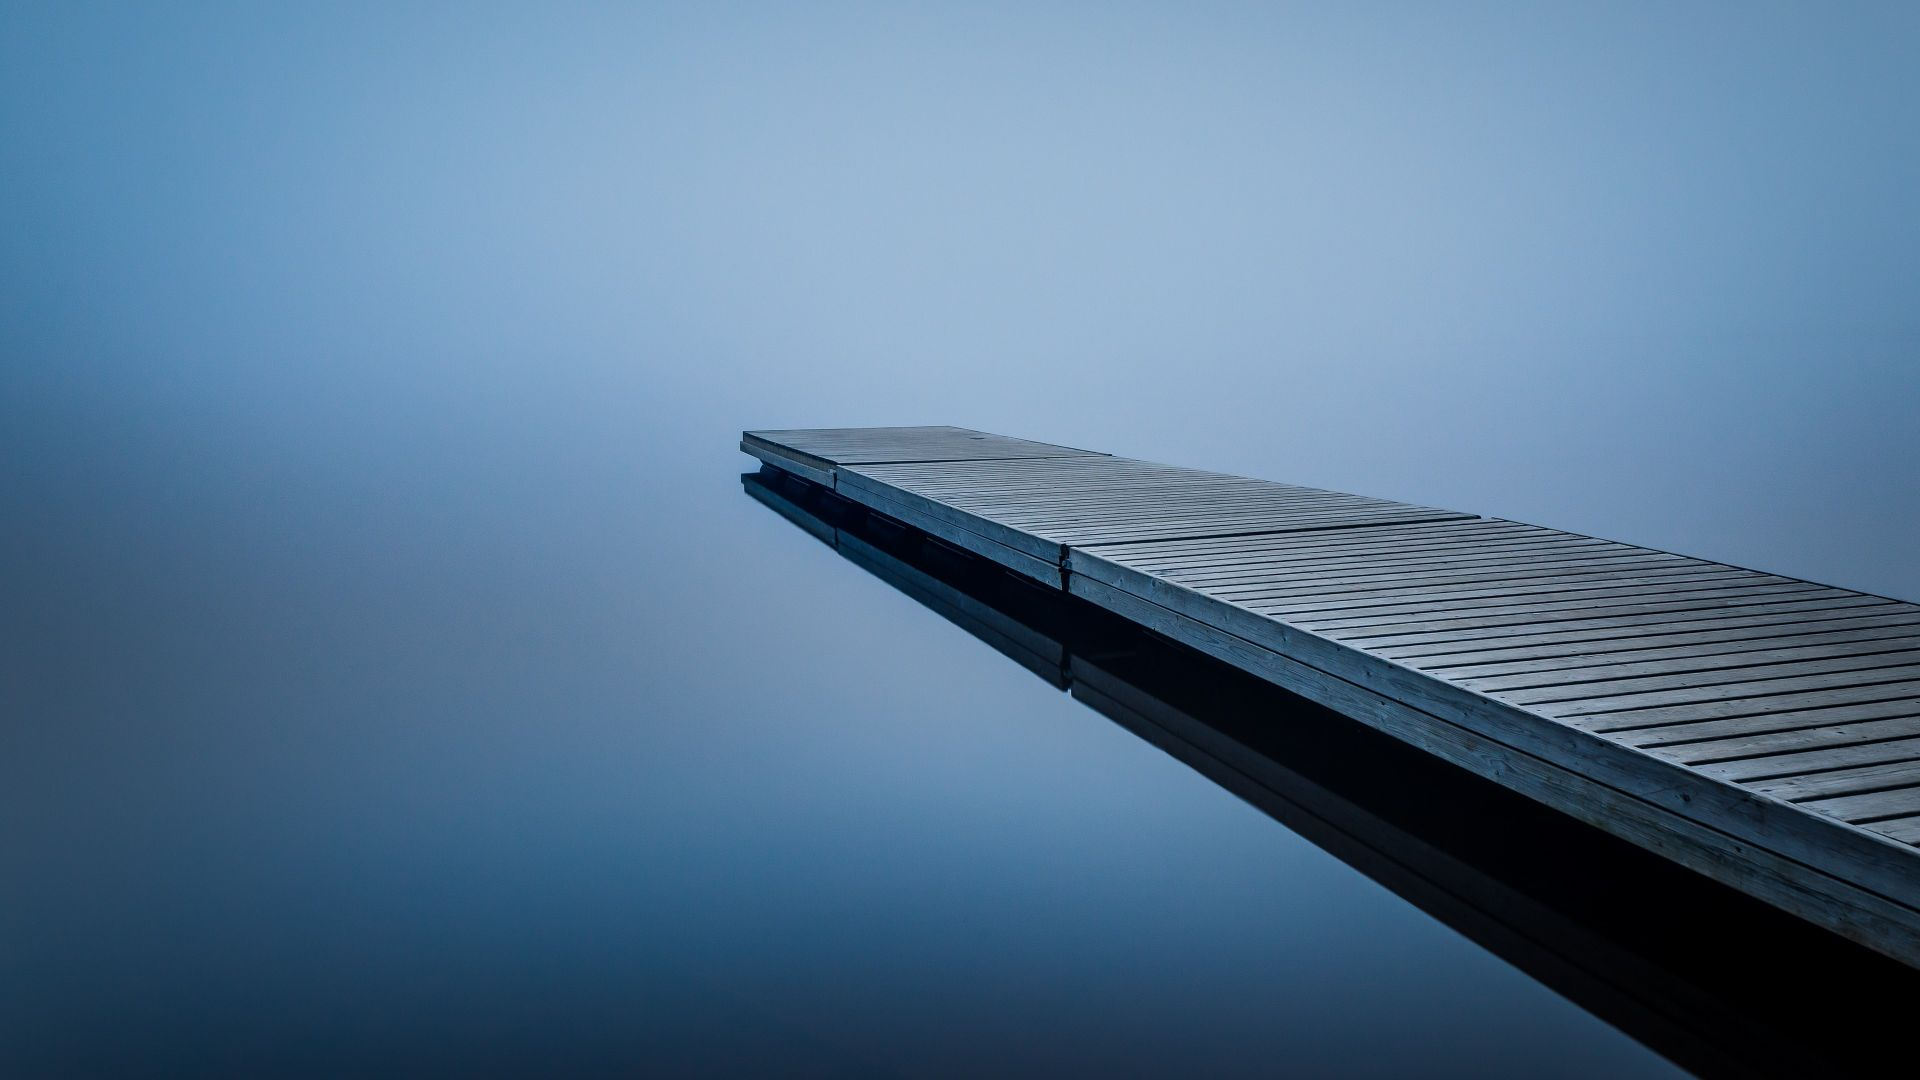 Dock, water, reflection, 4K (horizontal)